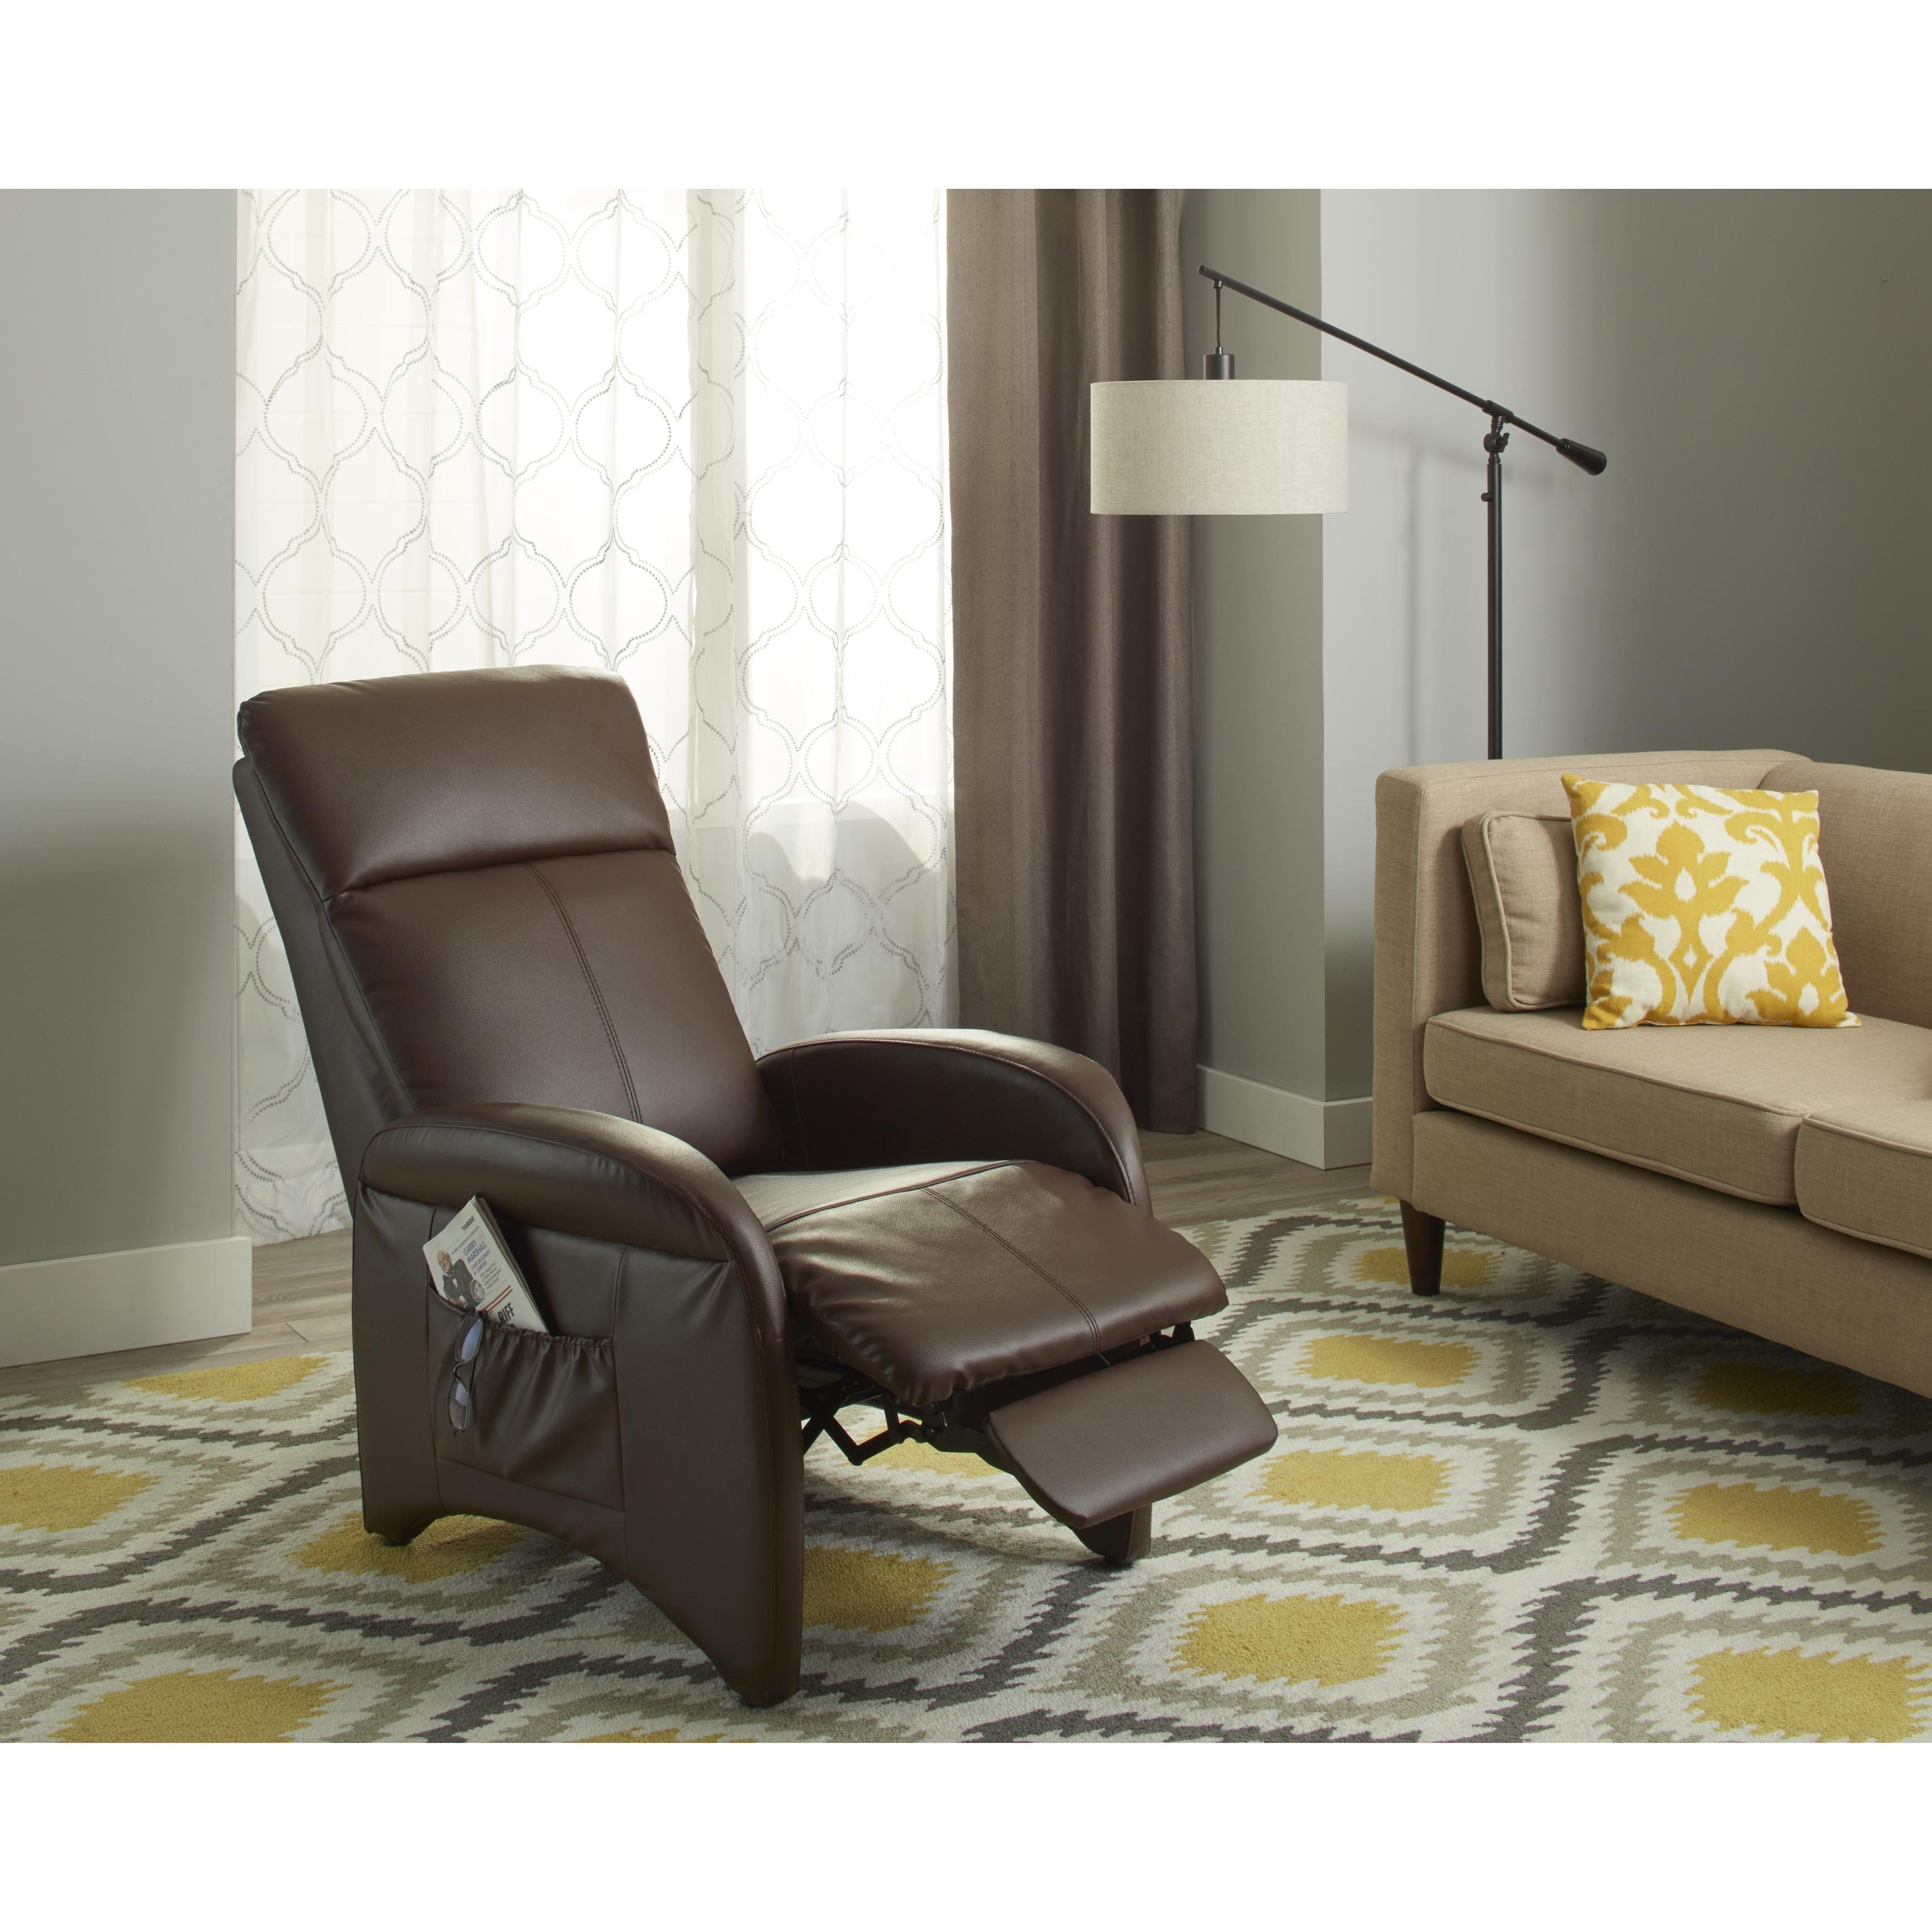 Buy Recliner Chairs & Rocking Recliners Online At